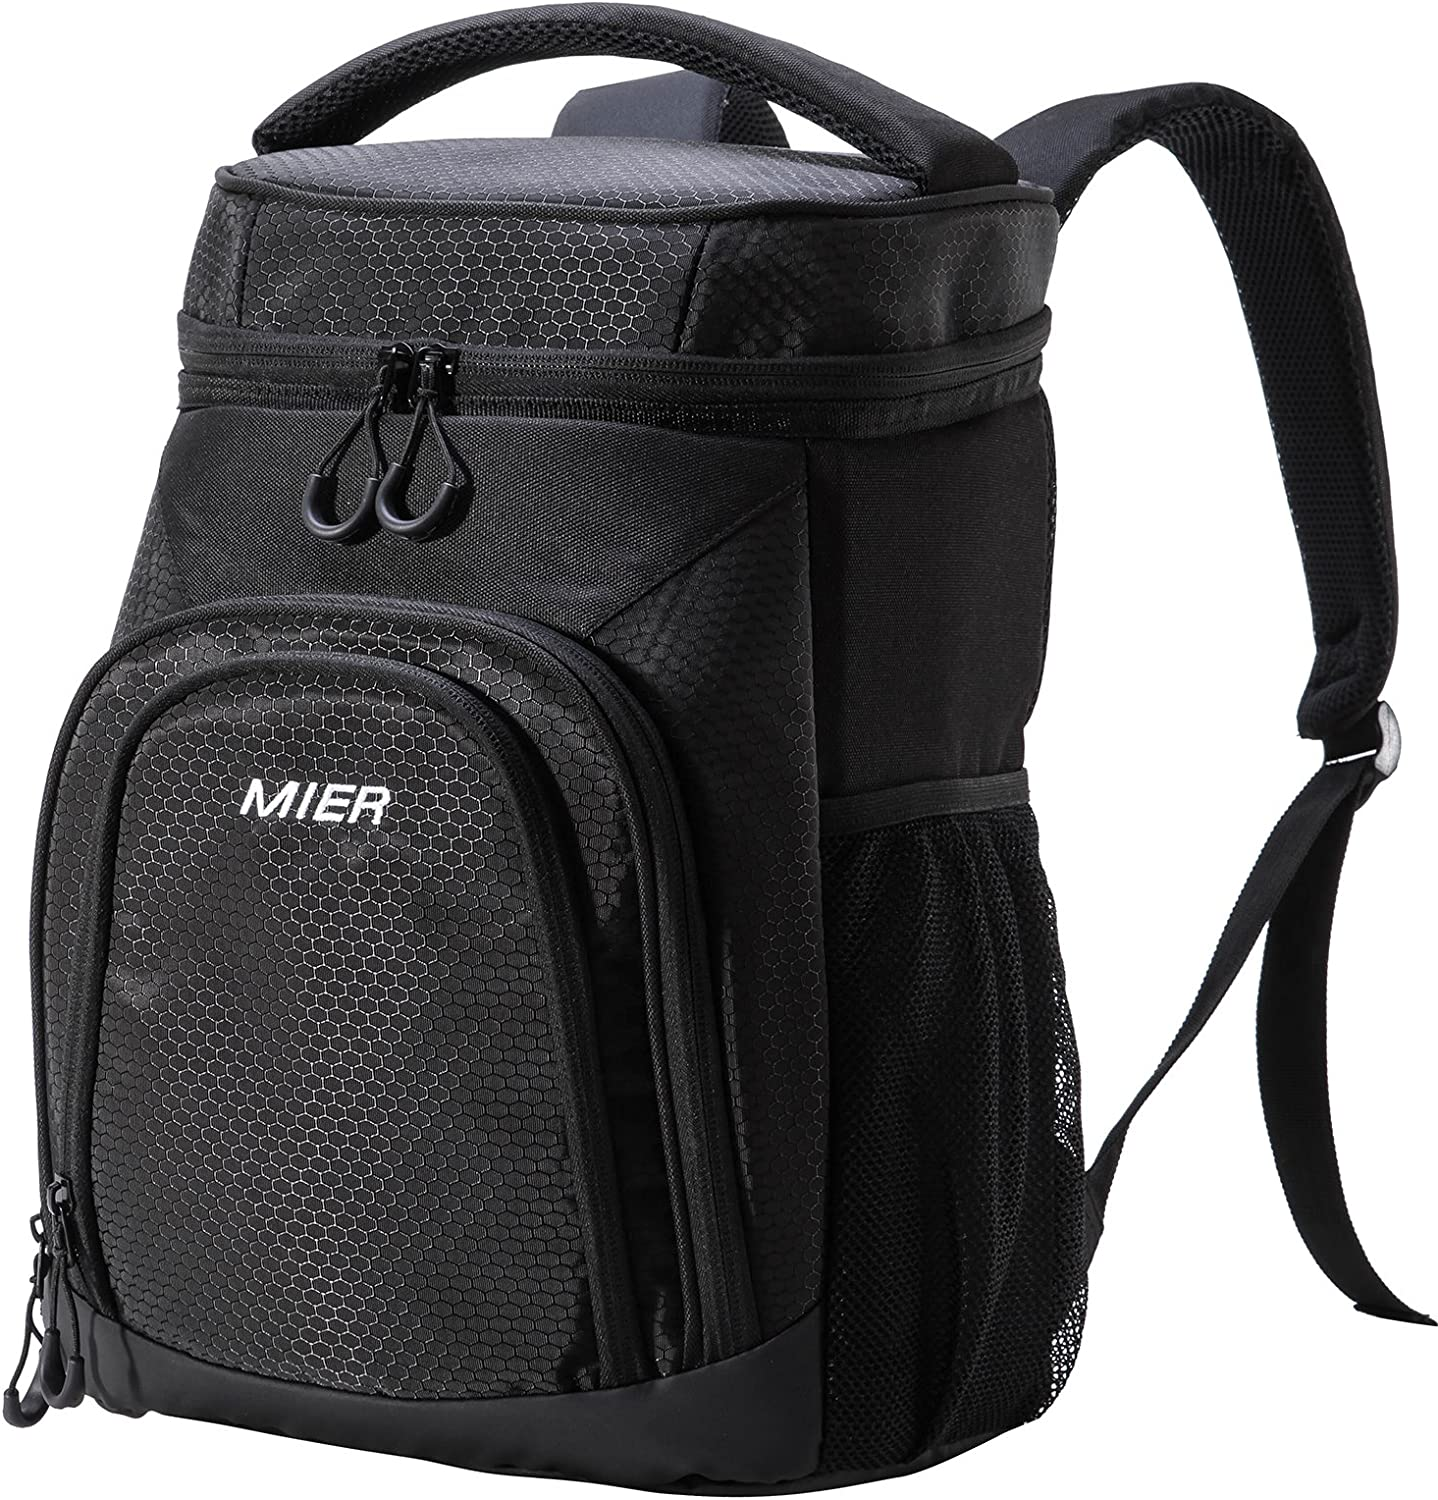 DAUSROOB Insulated Cooler Backpack